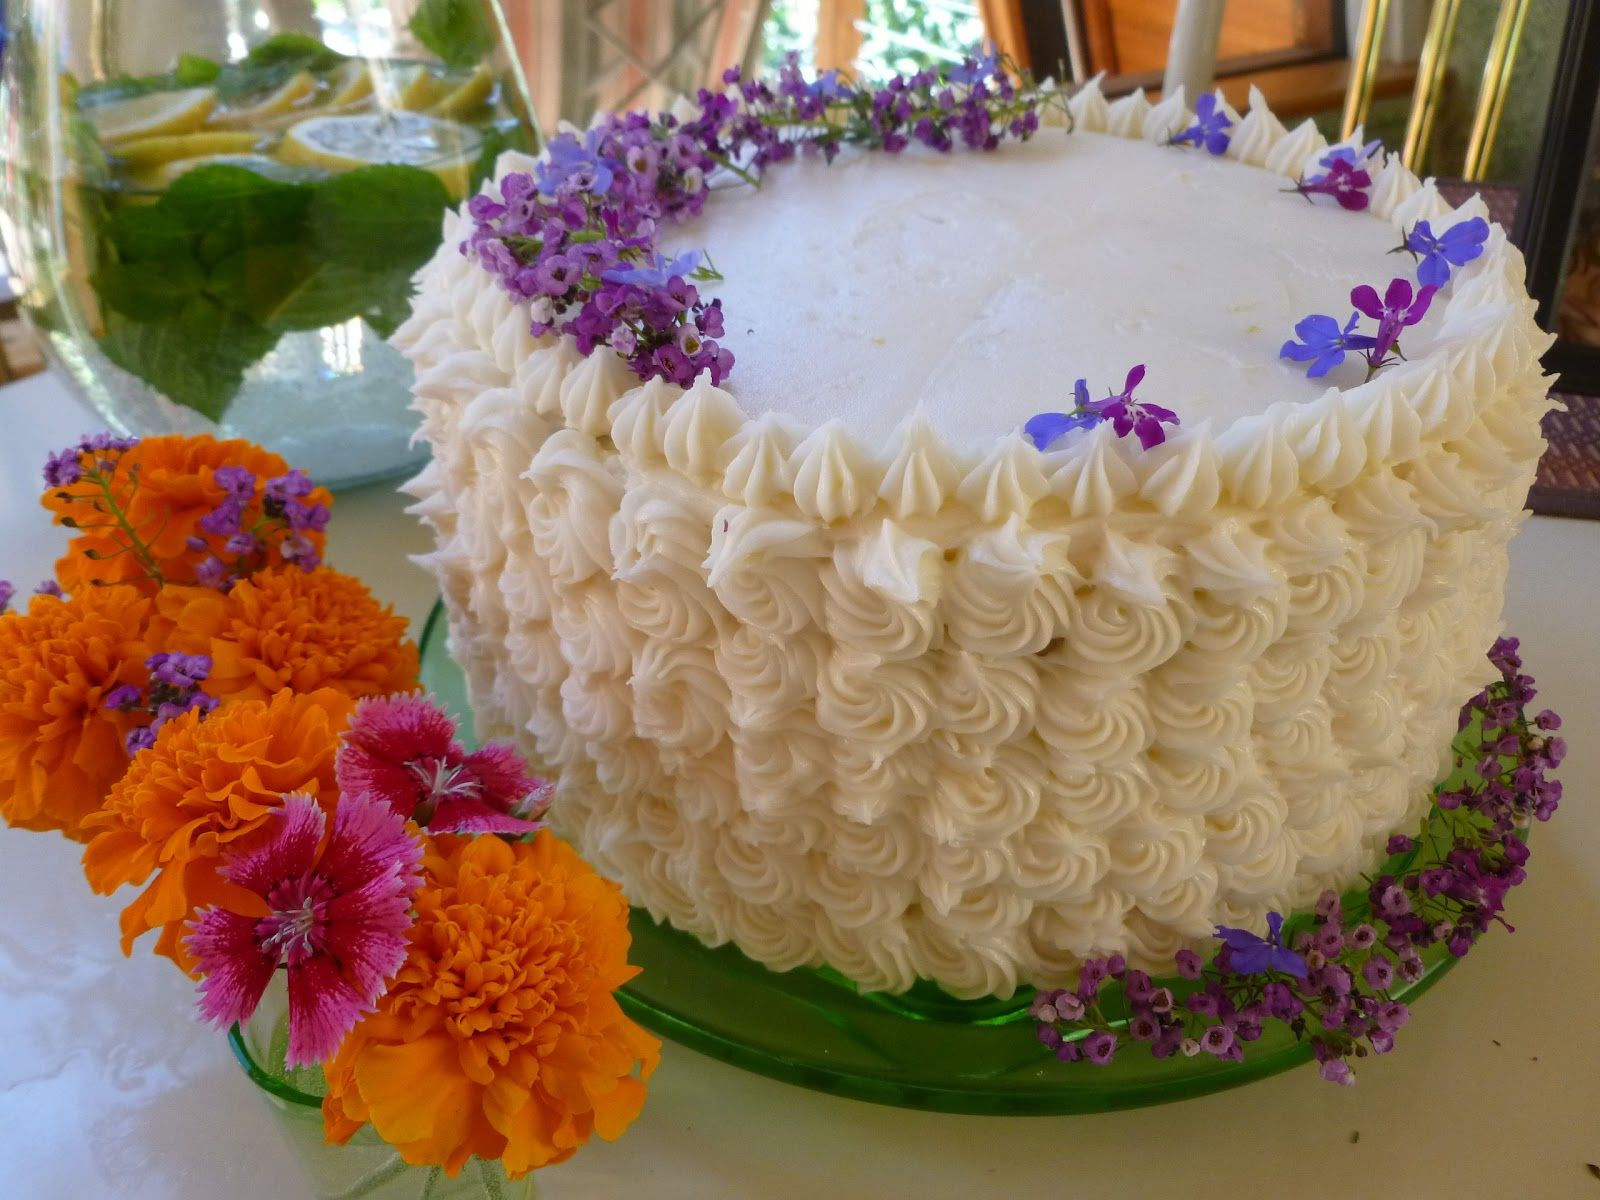 Happy Birthday Cakes With Flowers 1 Happy Birthday Cakes